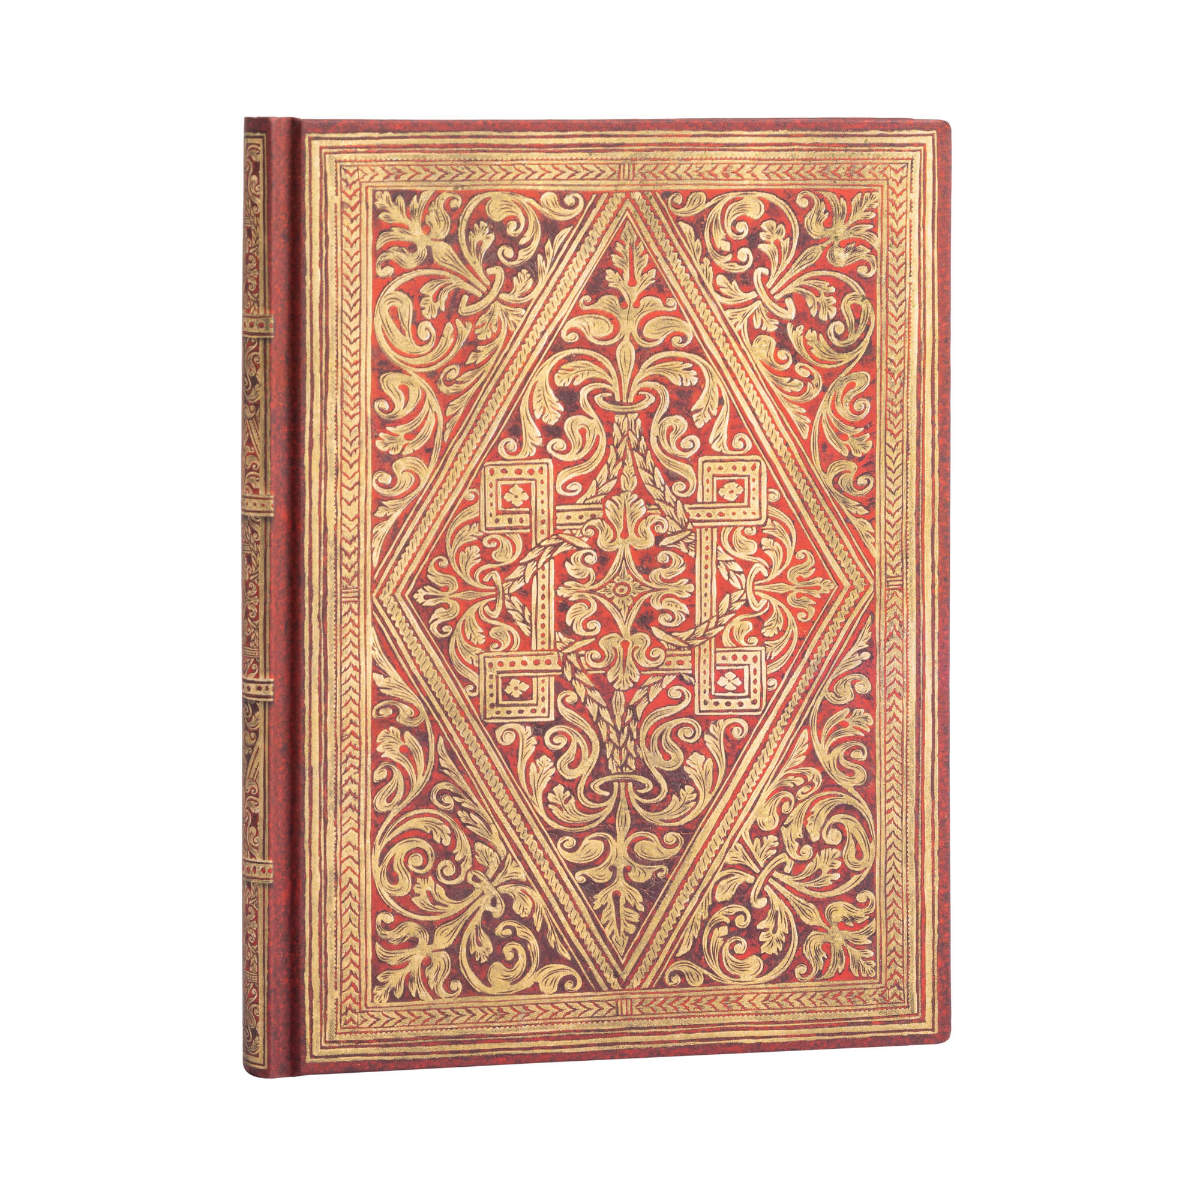 Paperblanks Golden Pathway 7 x 9 Inch Ultra Journal